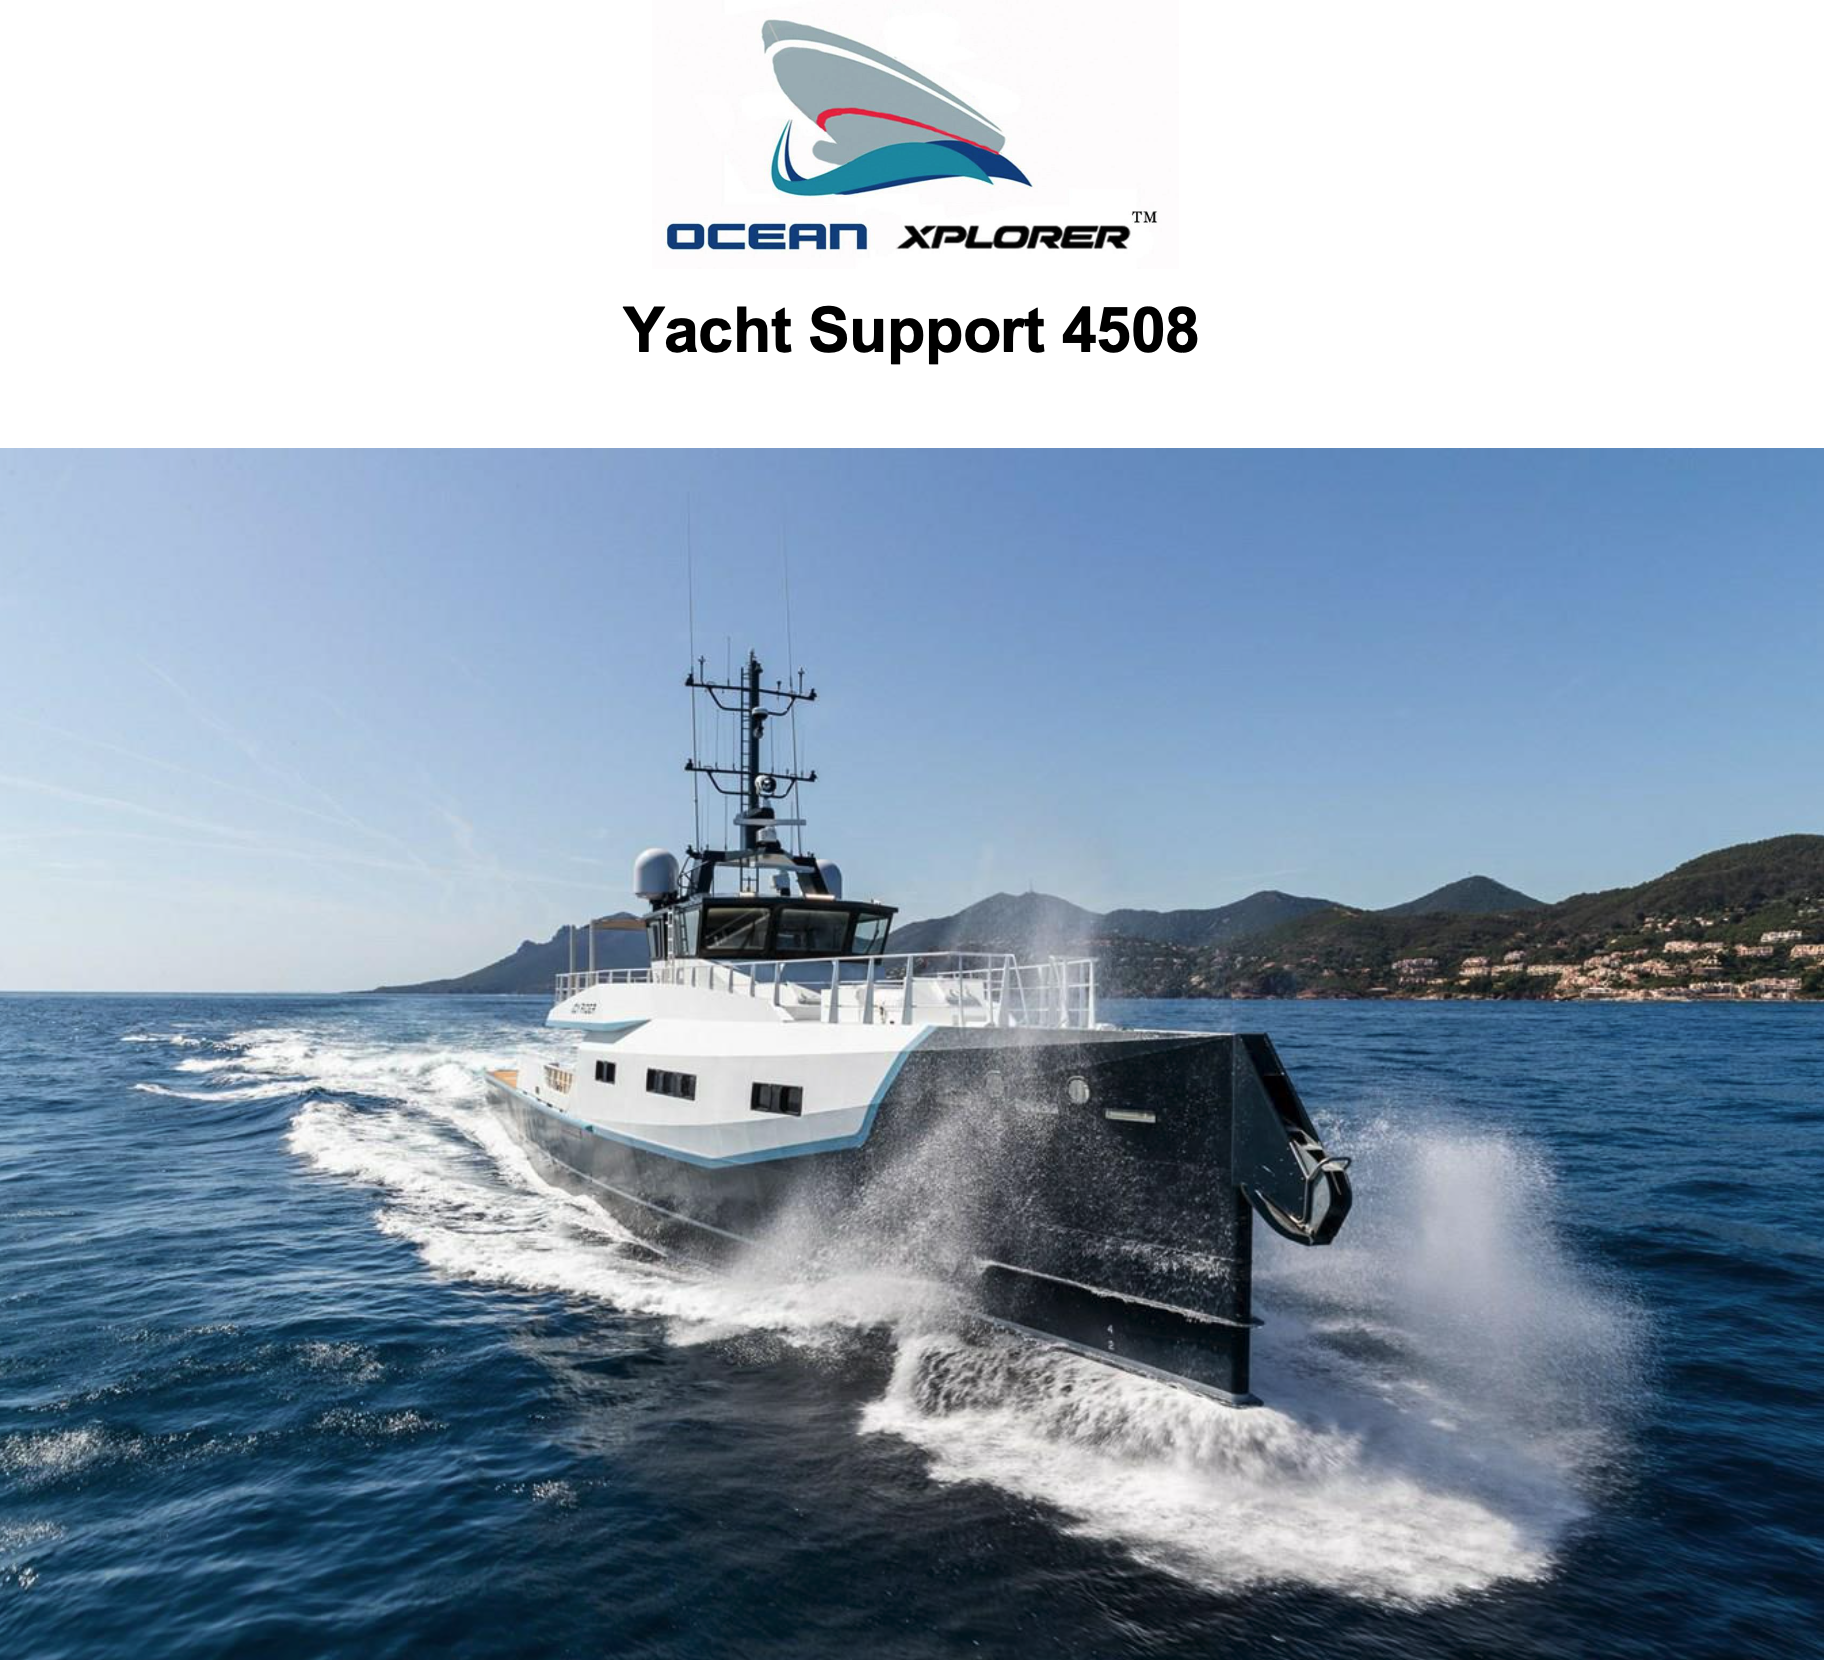 Damen 150' Yacht Support